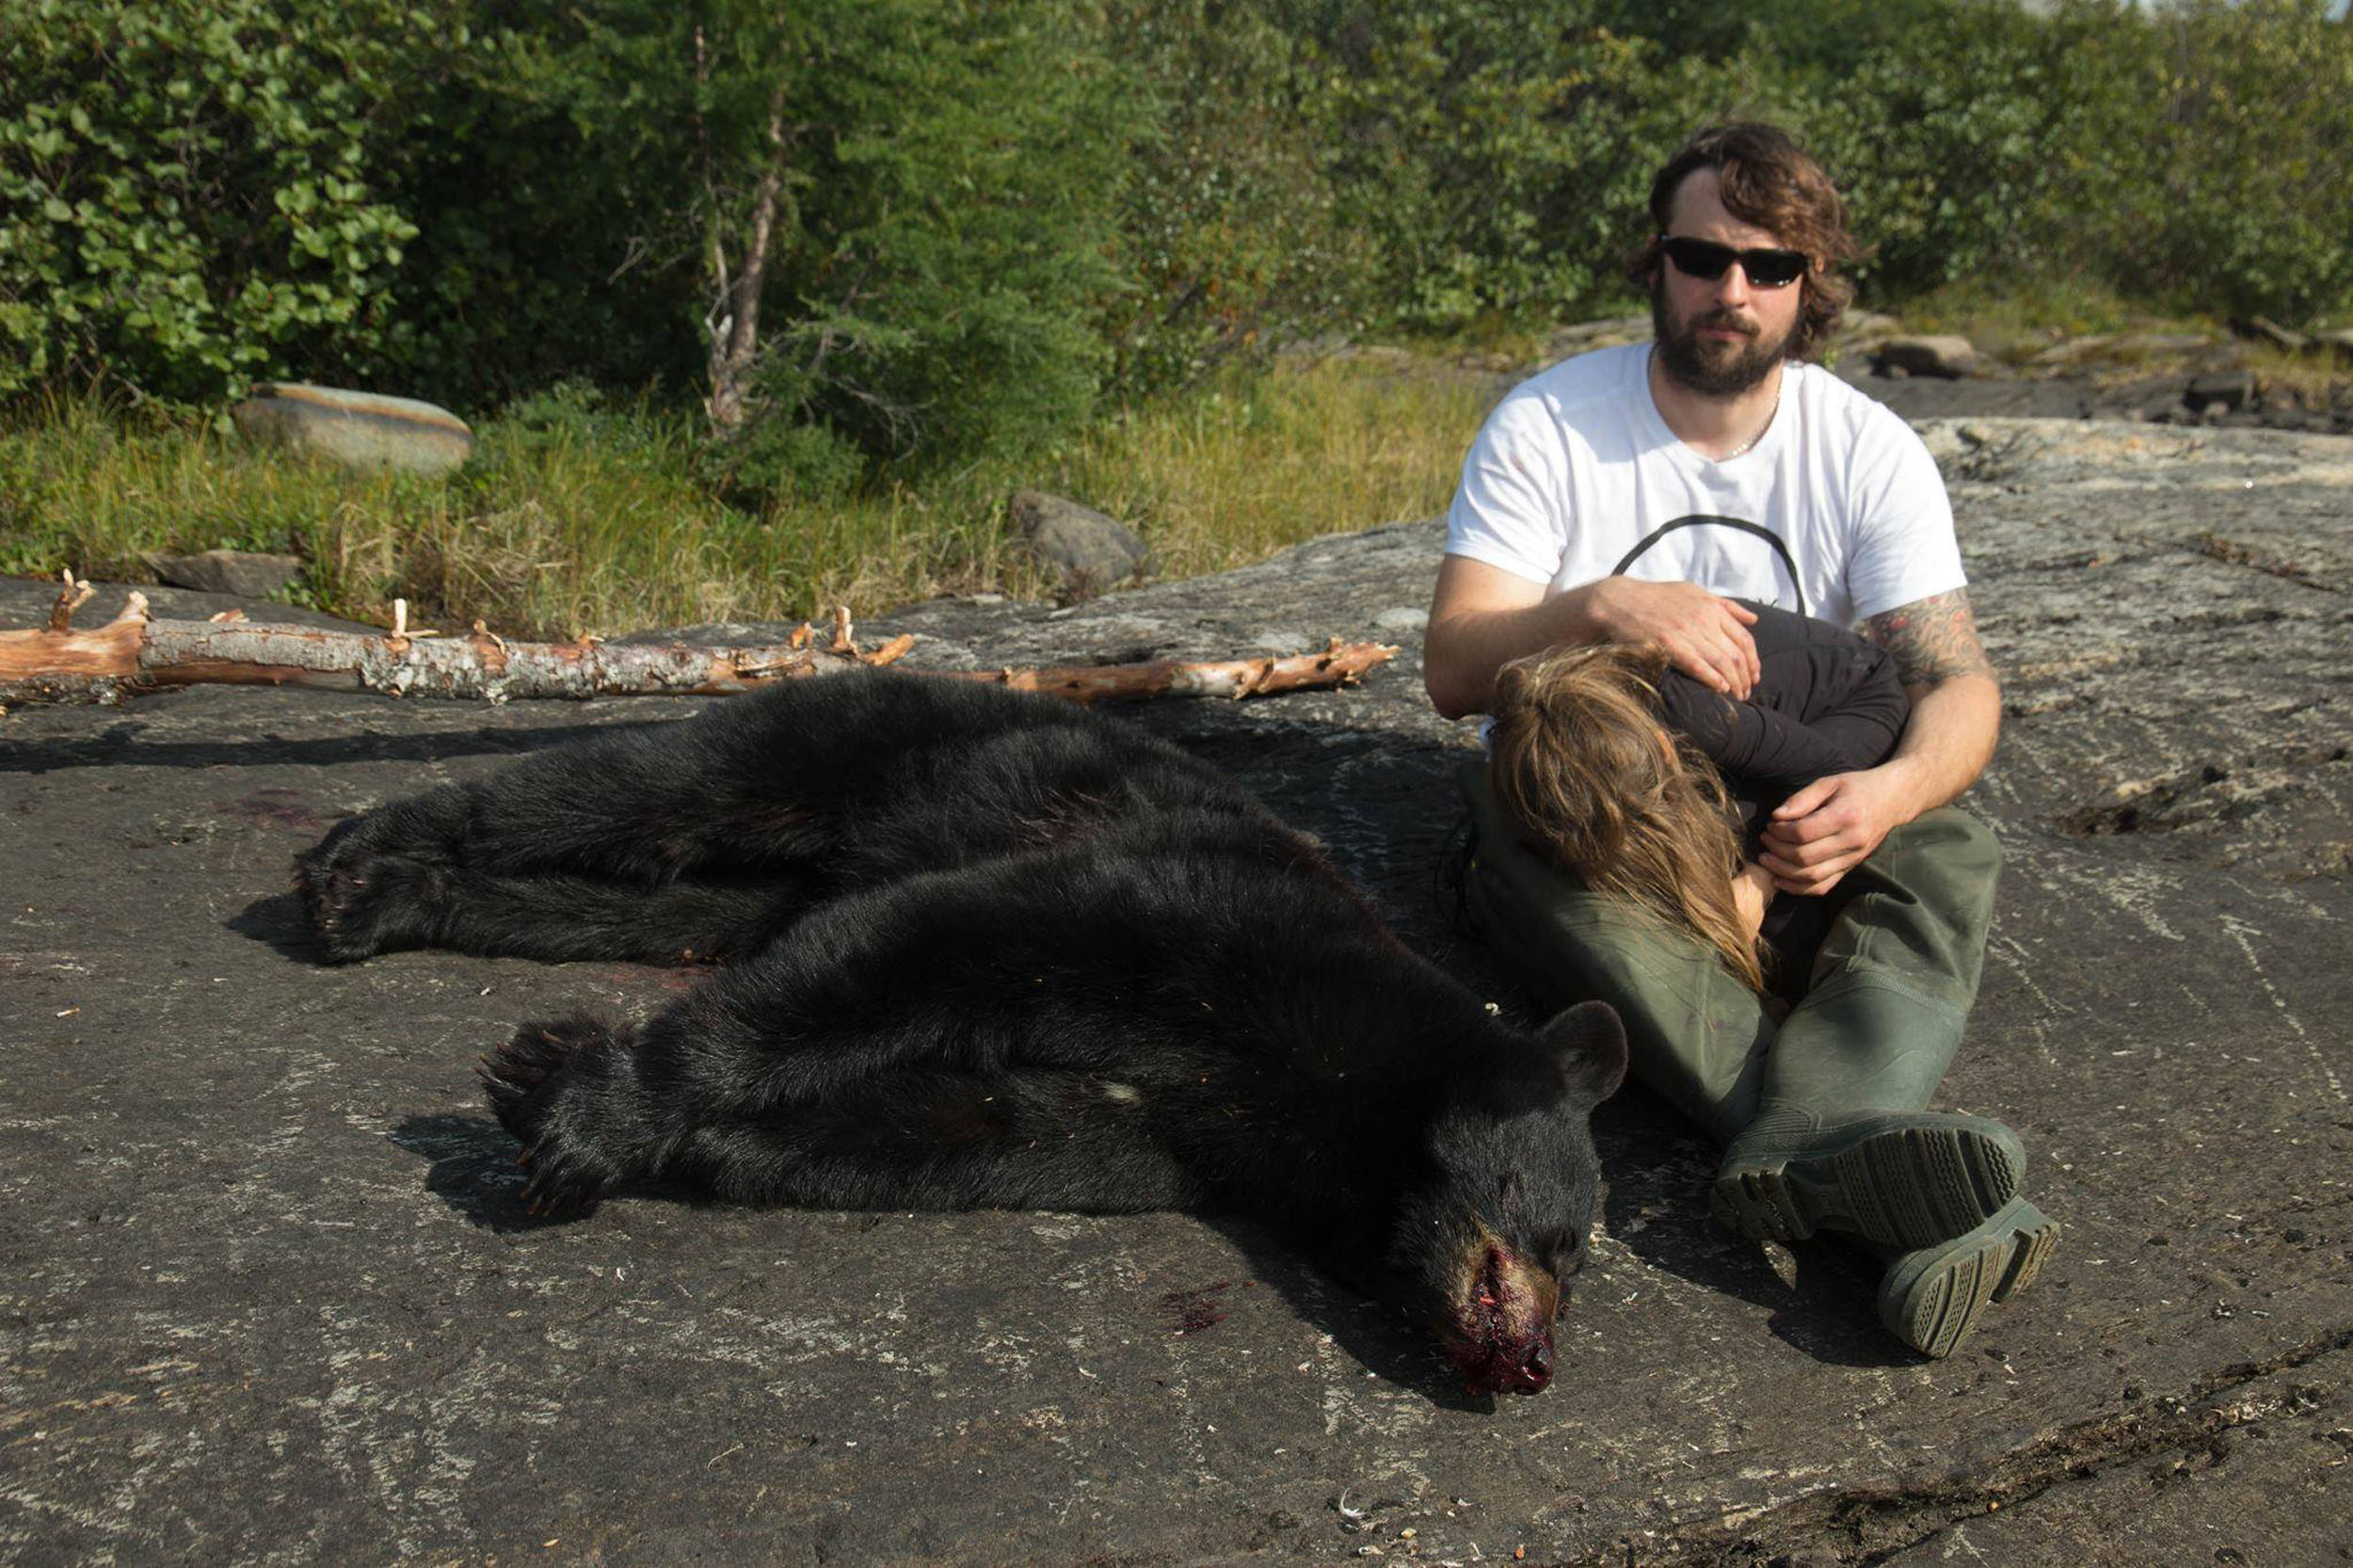 Samuel Hamel-Ratté is pictured holding his five-year-old daughter, Charlie, and seated next to the female black bear he shot and killed last weekend when the animal got within 10 feet of the young girl. (PHOTO COURTESY OF S. HAMEL-RATTE)